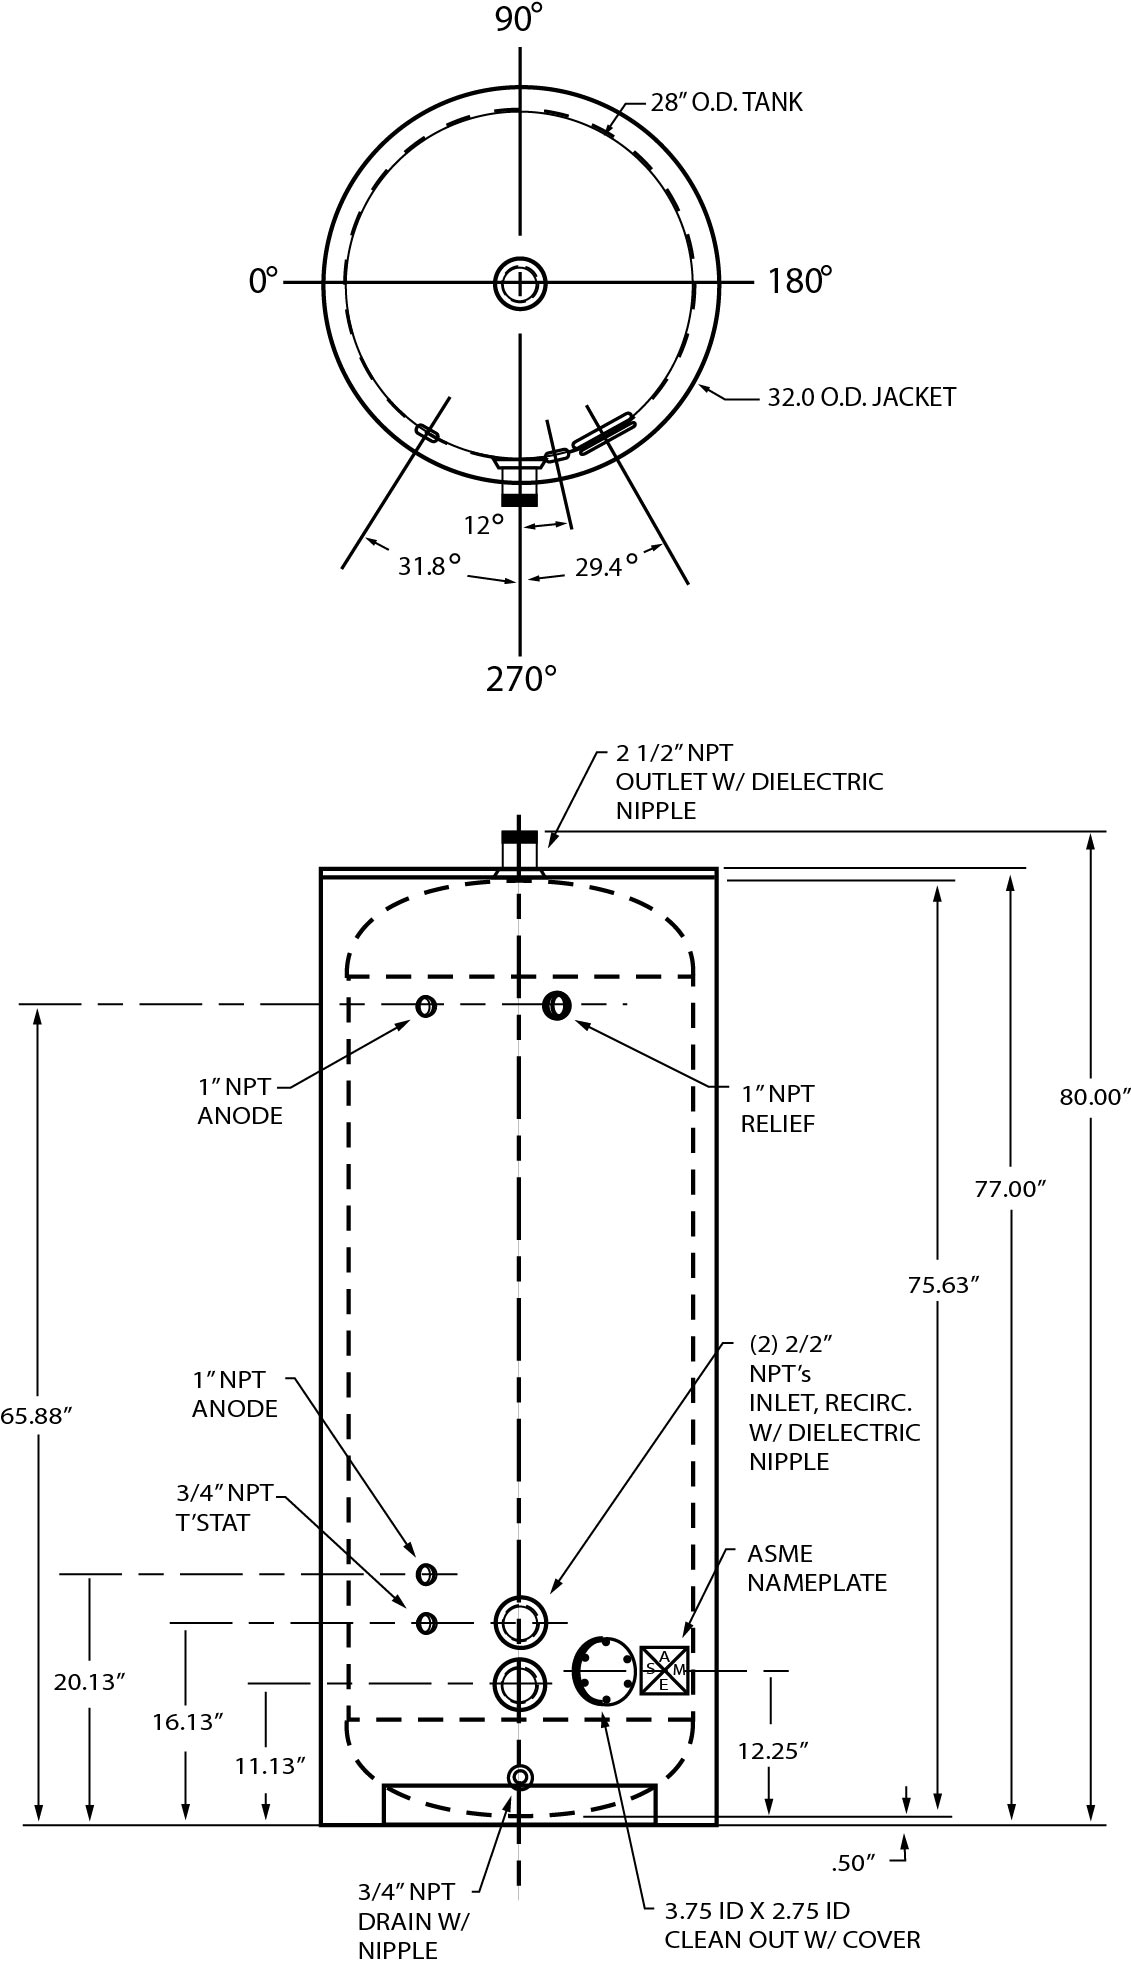 Berne Insulated Overalls Wiring Diagram Database